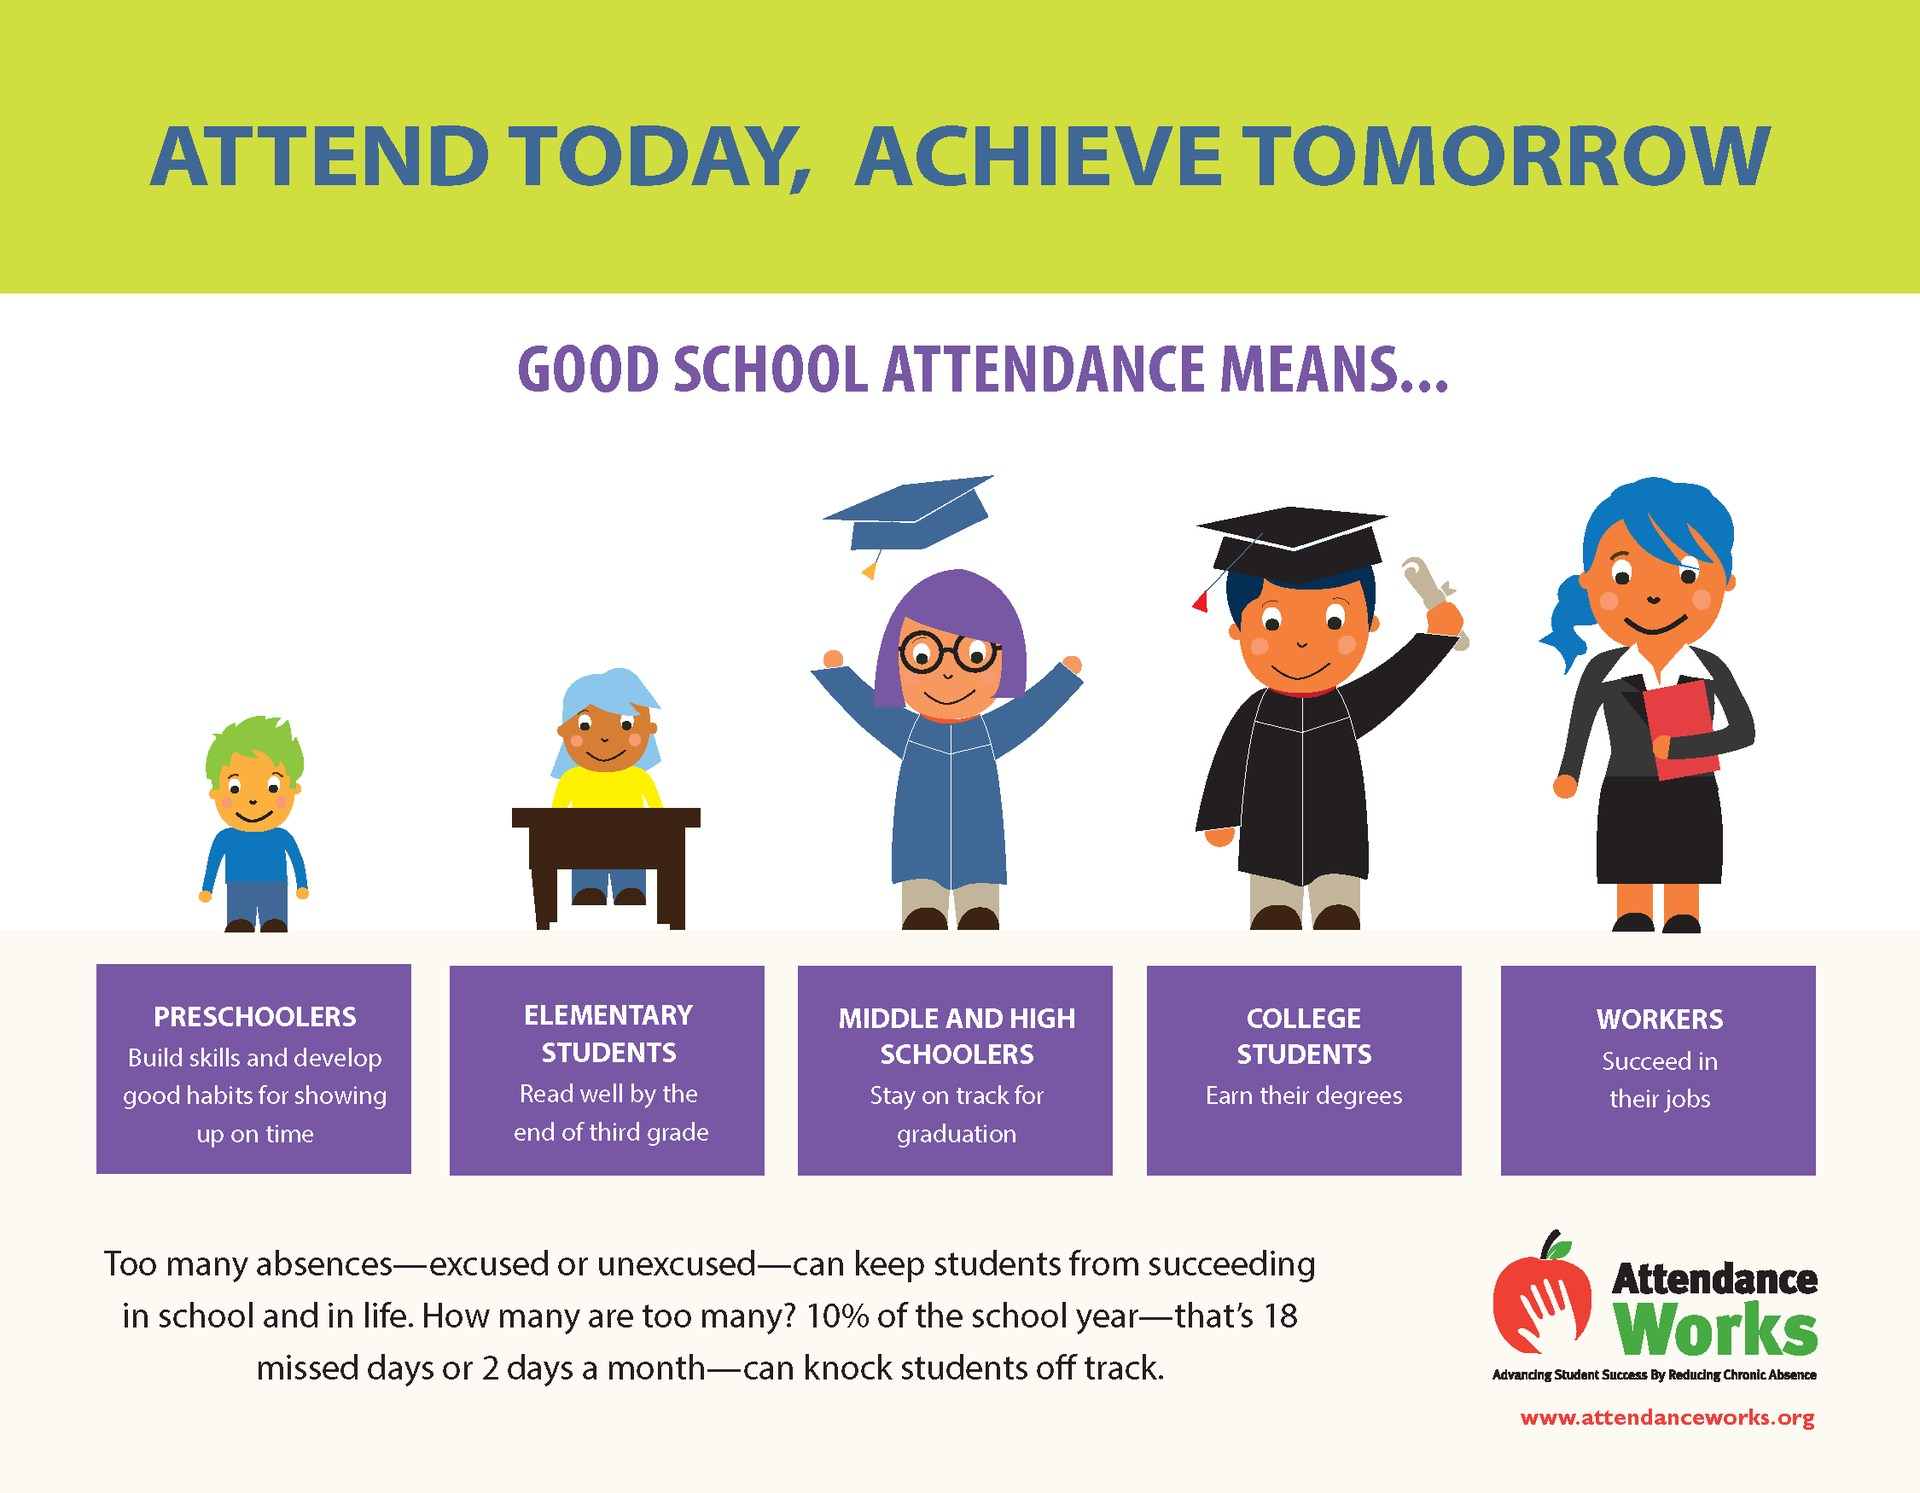 Attend school to succeed!